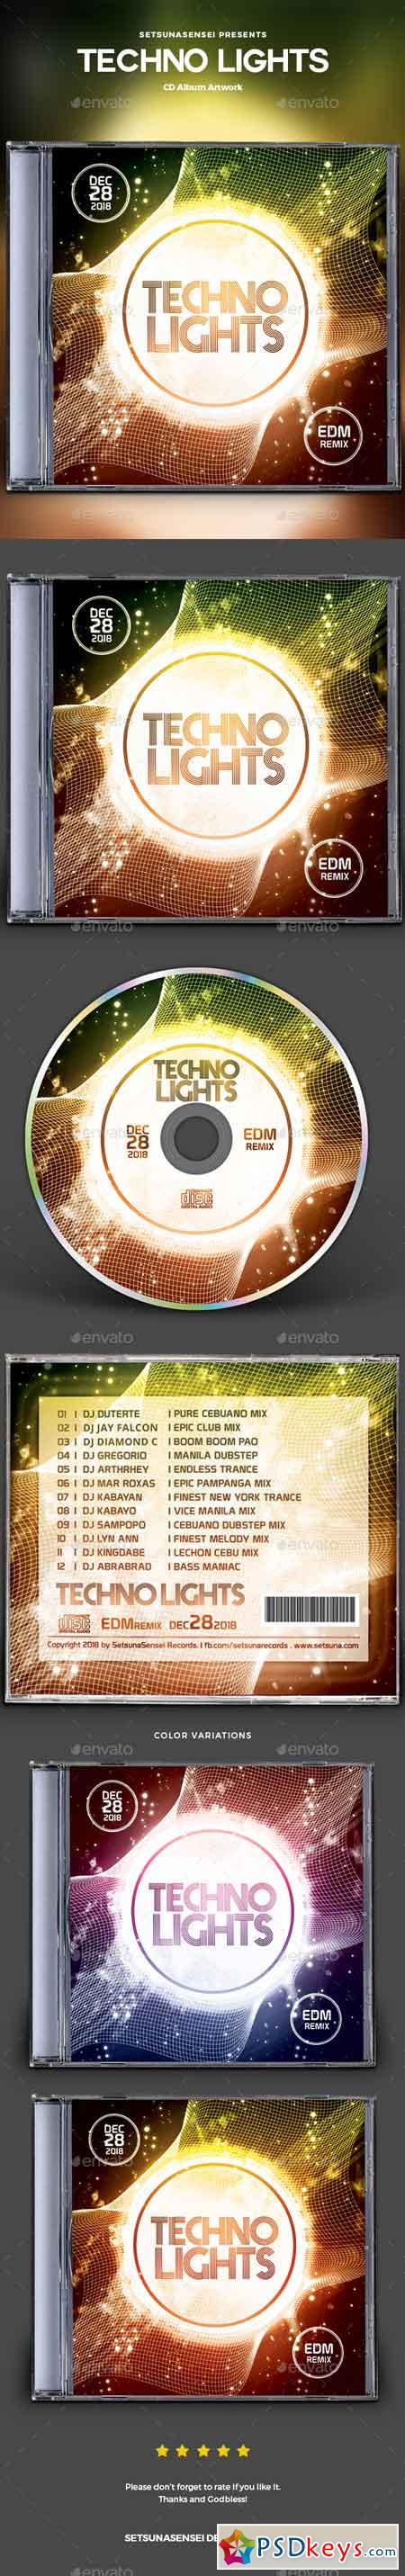 Techno Lights CD Album Artwork 22711029